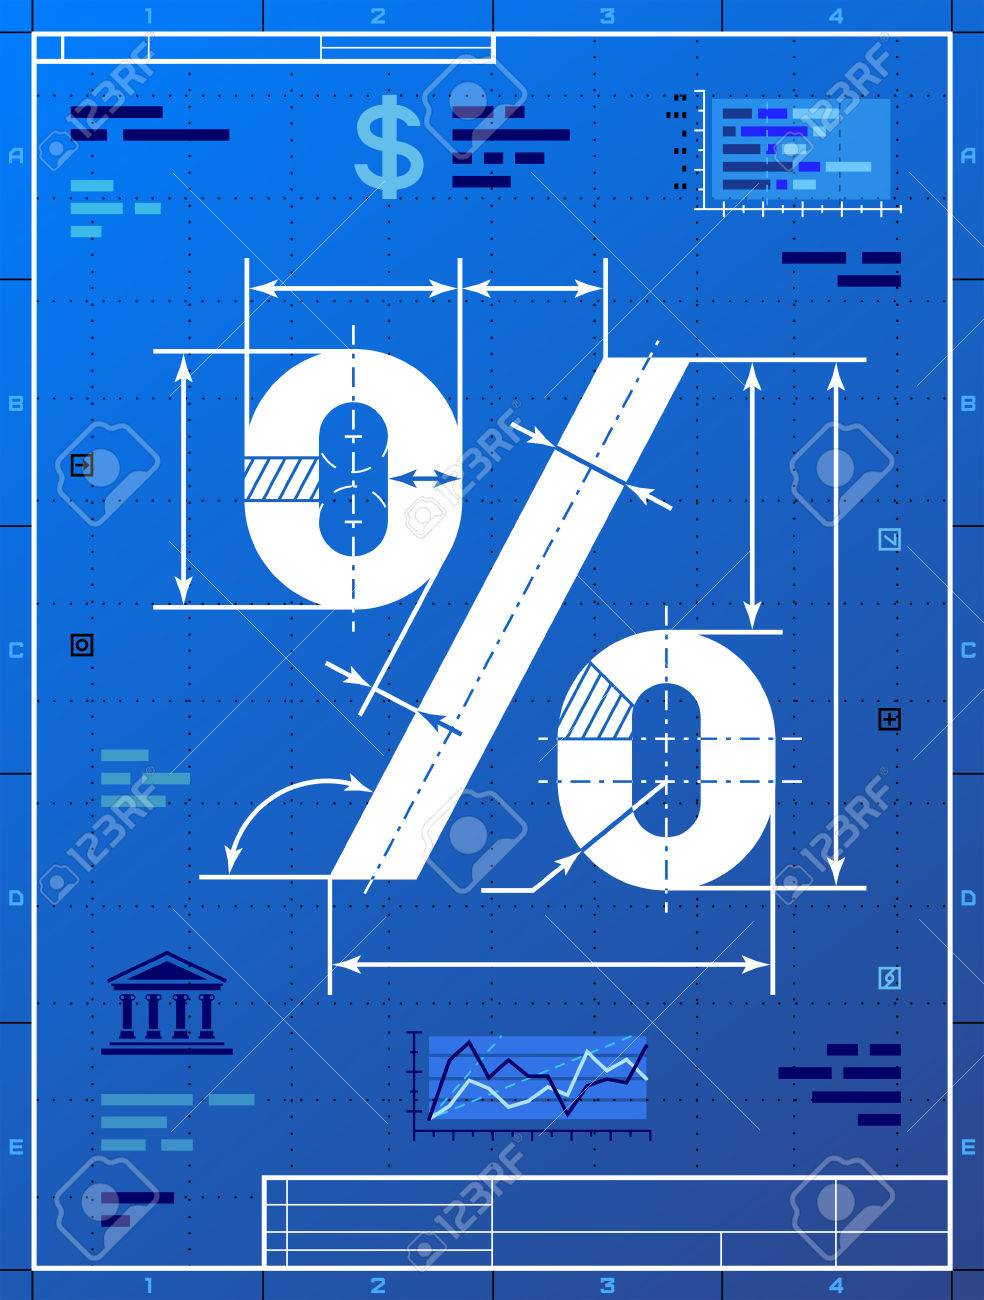 Percent sign like blueprint drawing stylized drafting of percentage percent sign like blueprint drawing stylized drafting of percentage symbol on blueprint paper qualitative vector eps malvernweather